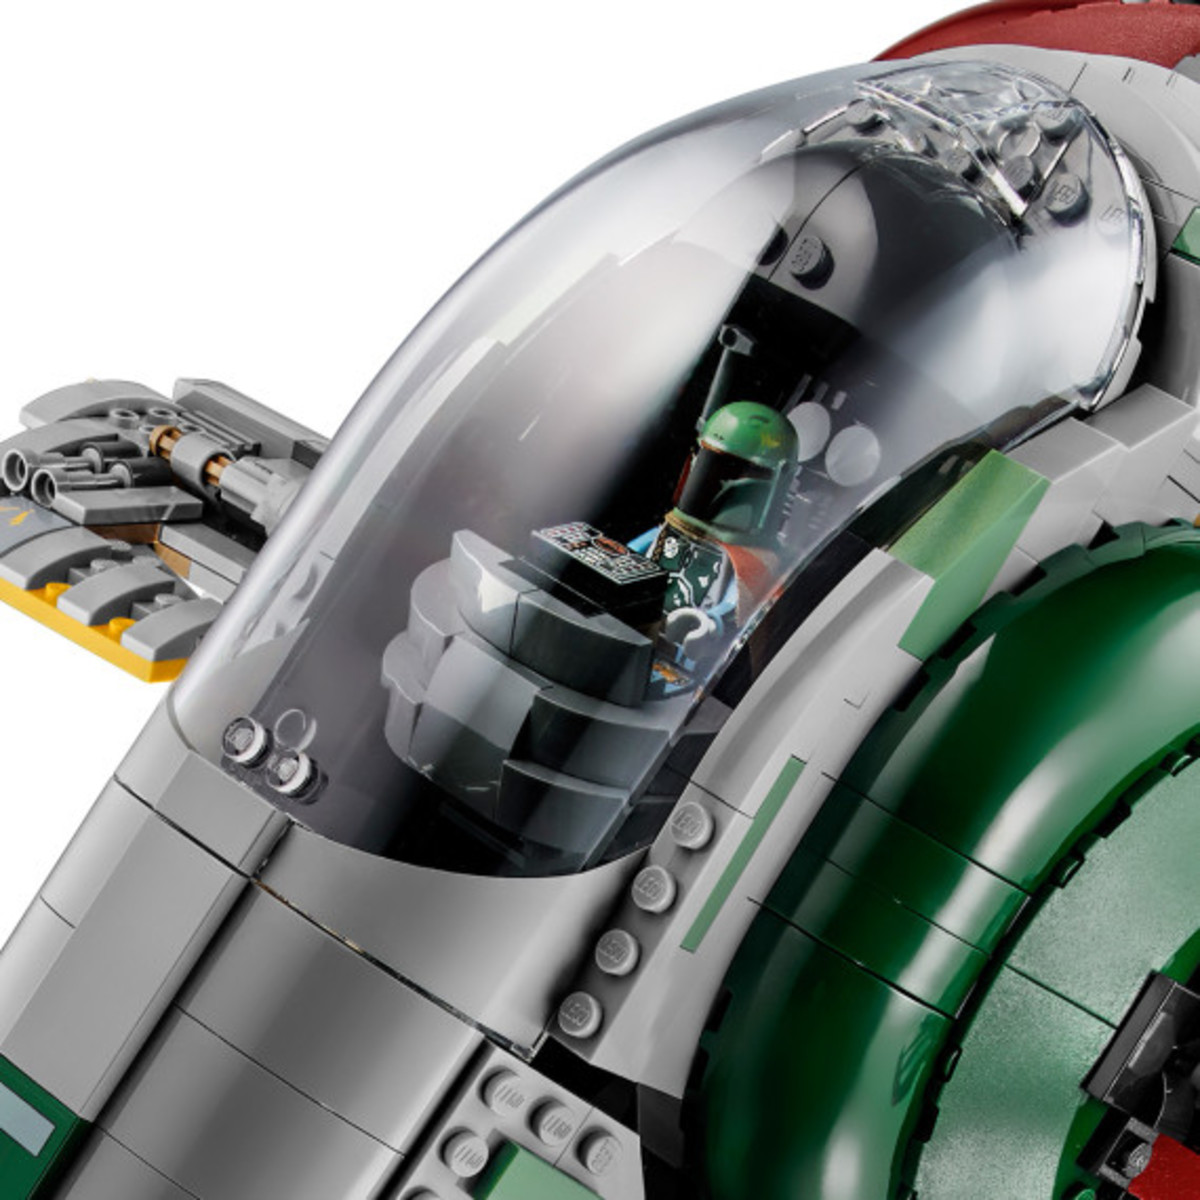 Star Wars x LEGO Ultimate Collector's Series: Boba Fett's Slave I Kit | Release Info - 24